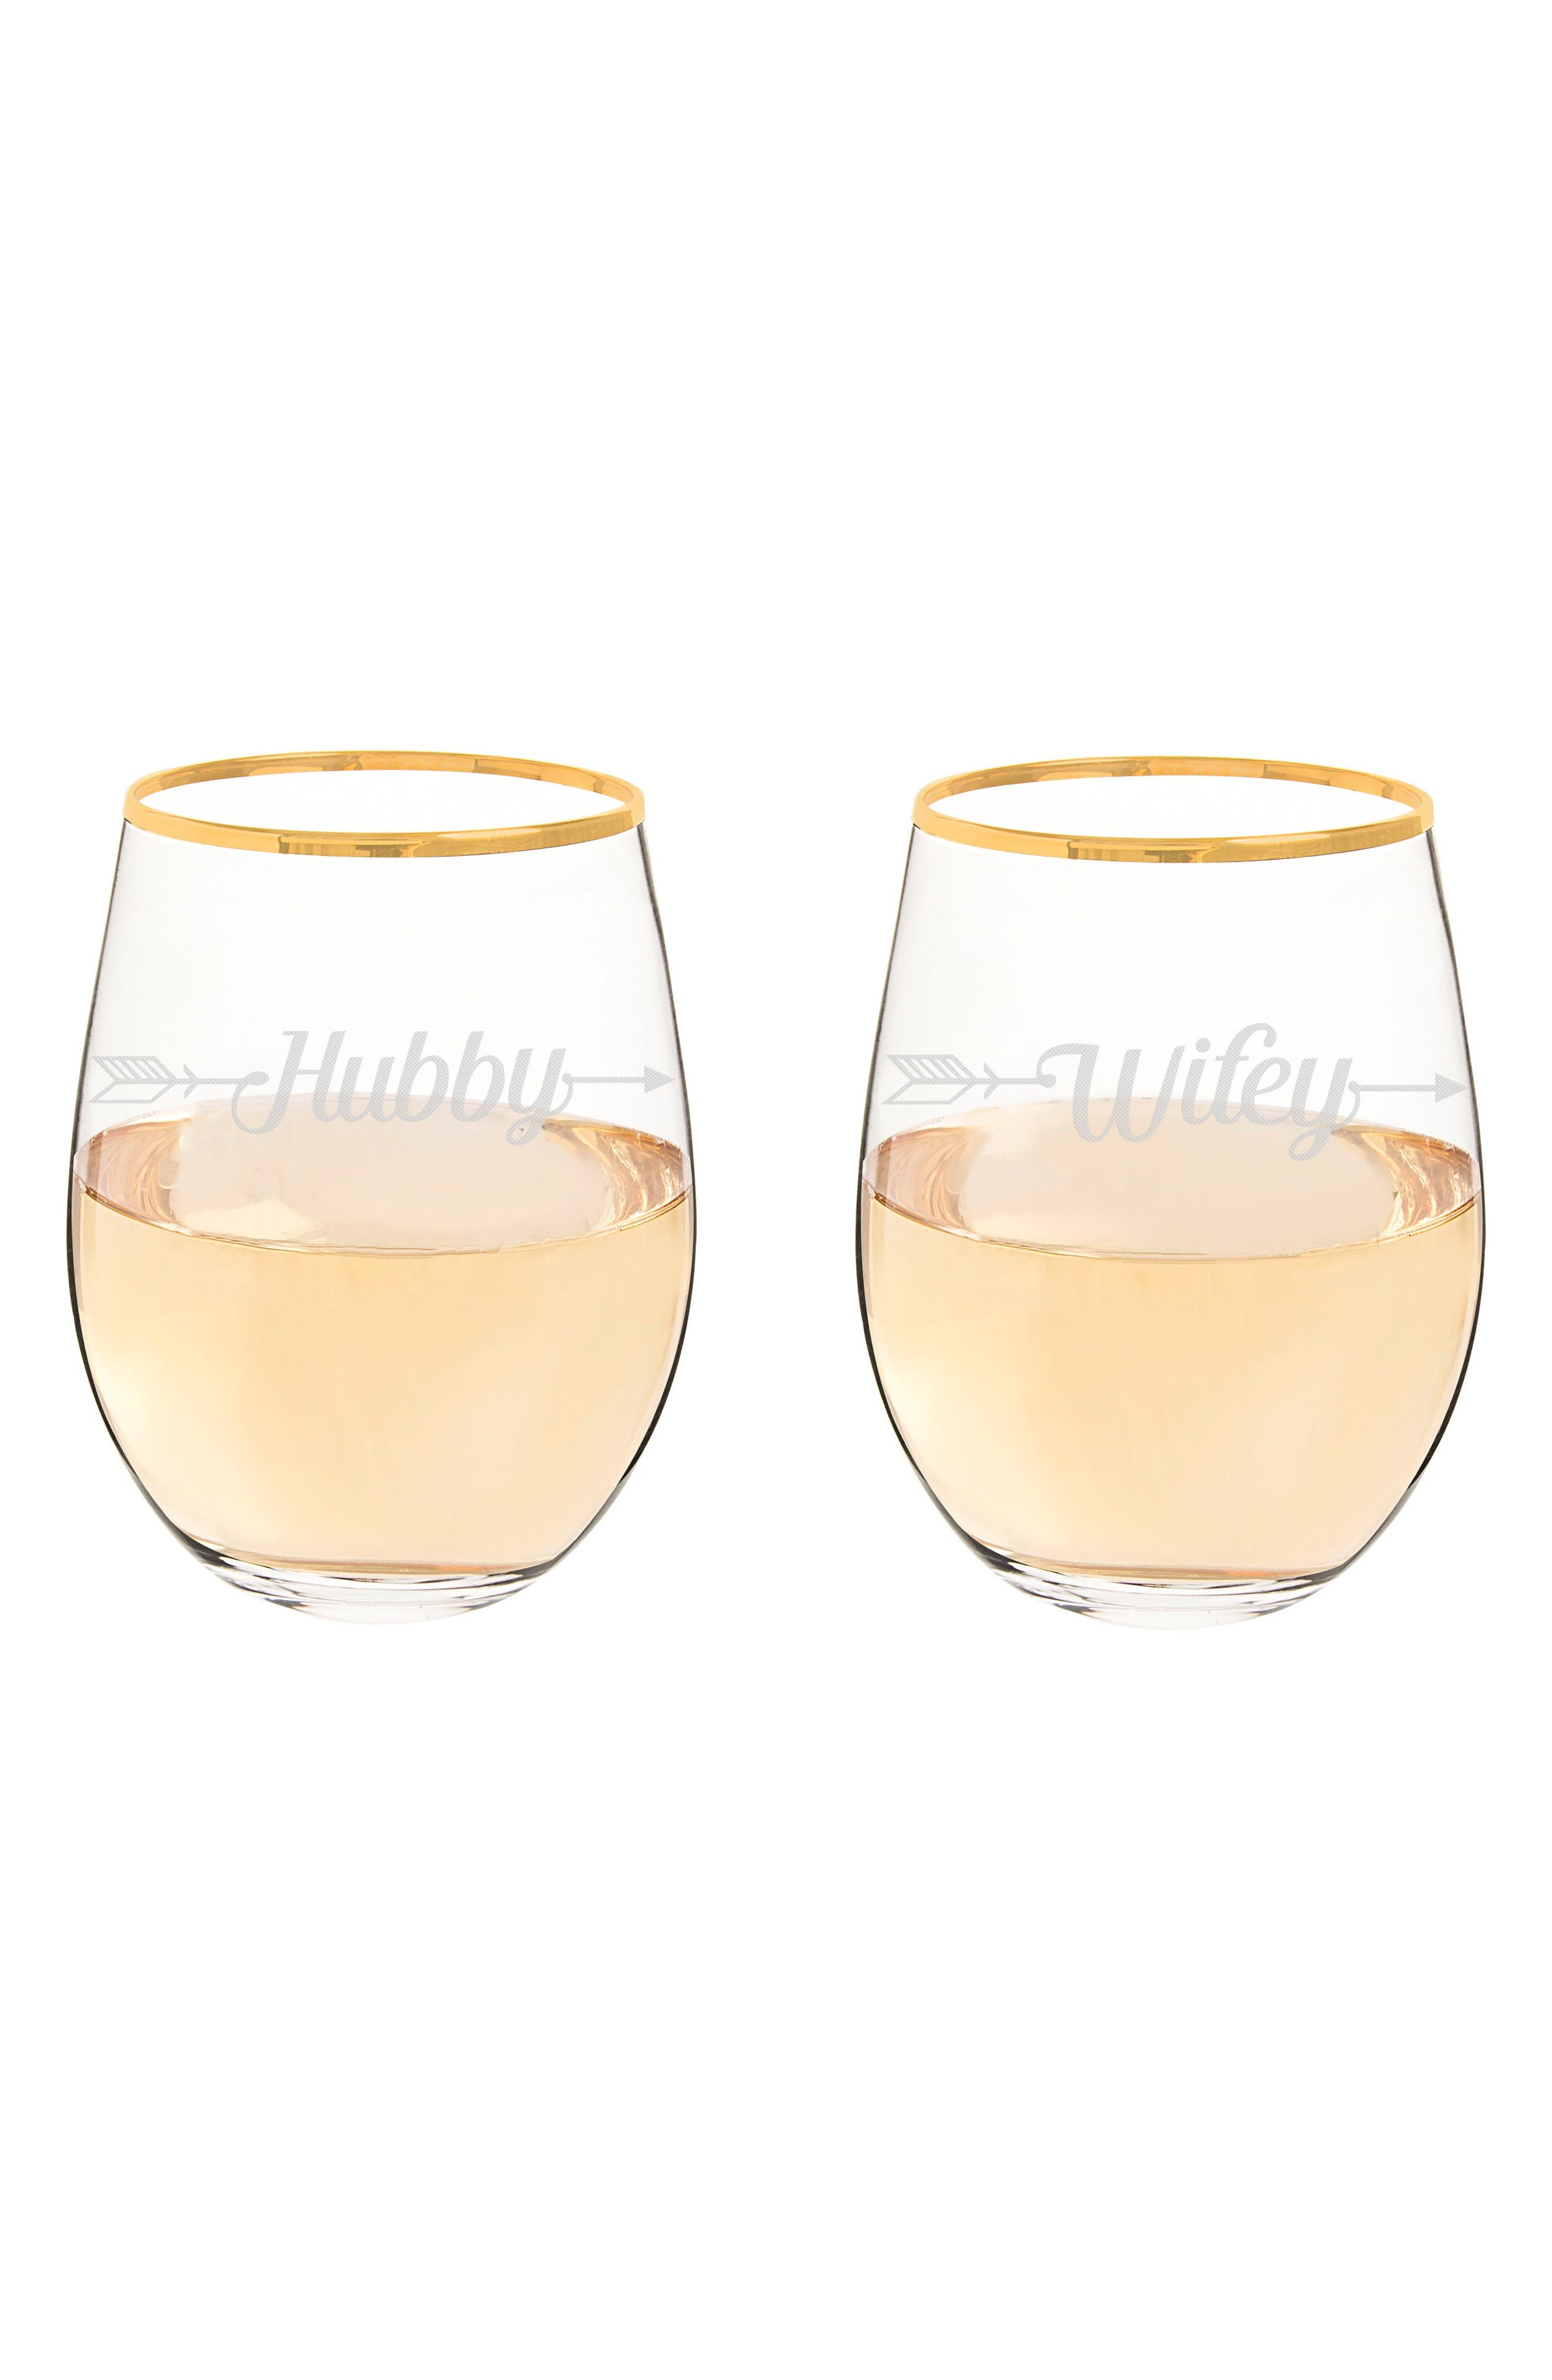 Main Image - Cathy's Concepts Hubby/Wifey Set of 2 Gold Rimmed Stemless Wine Glasses